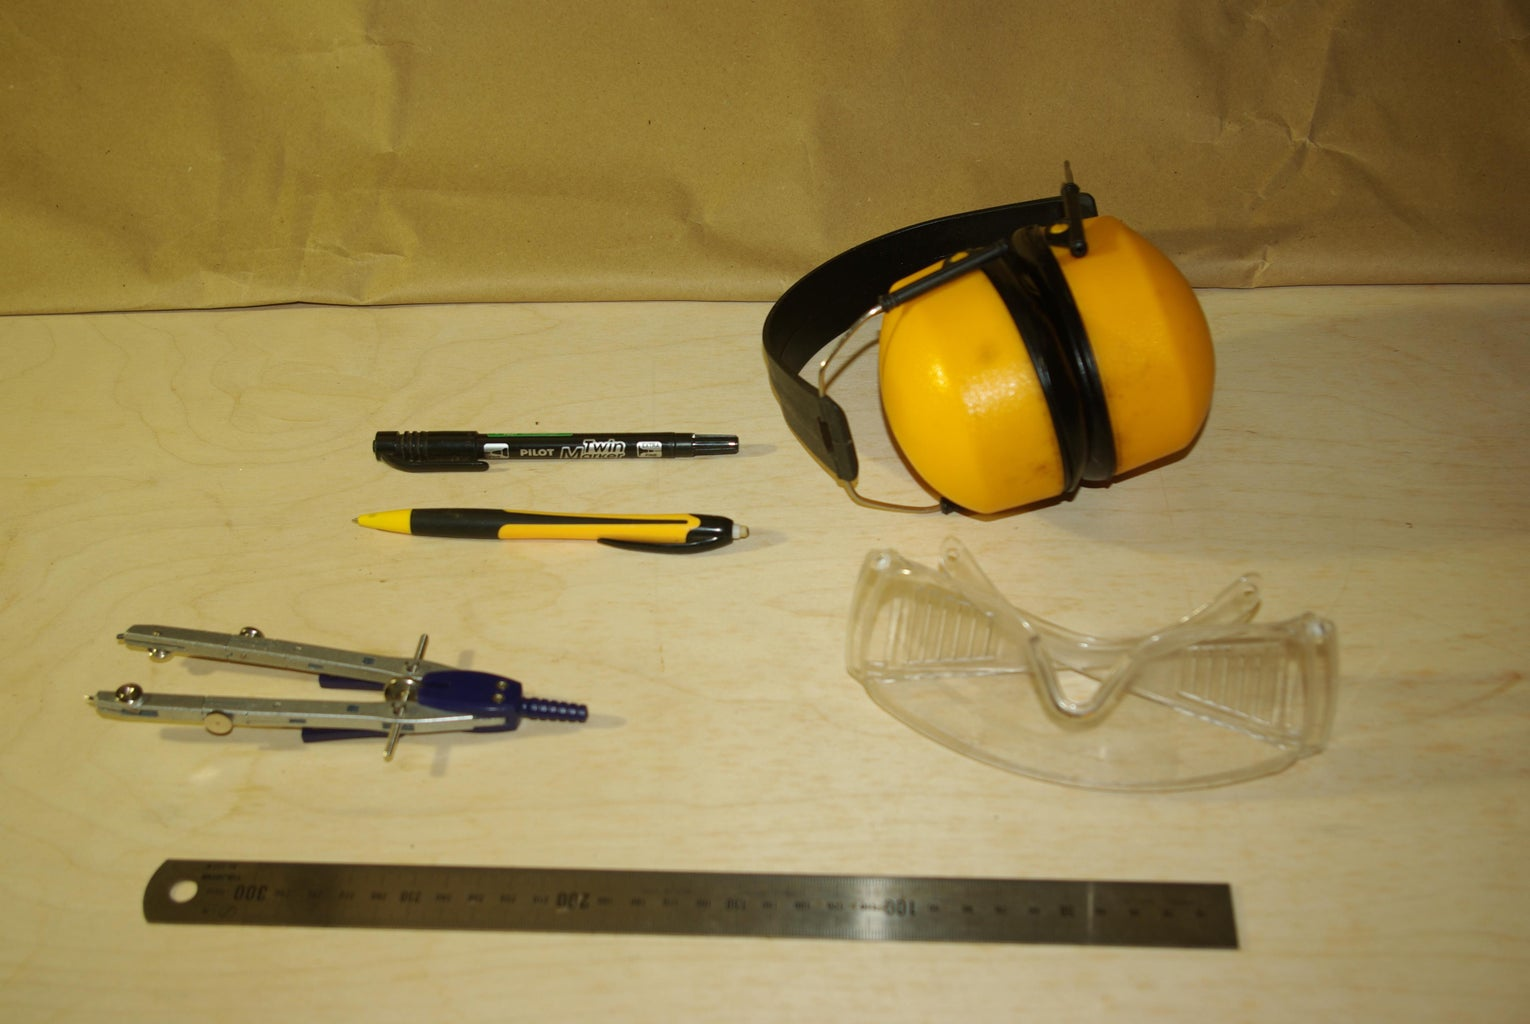 Gathering Tools #1: Marking, Personal Protection